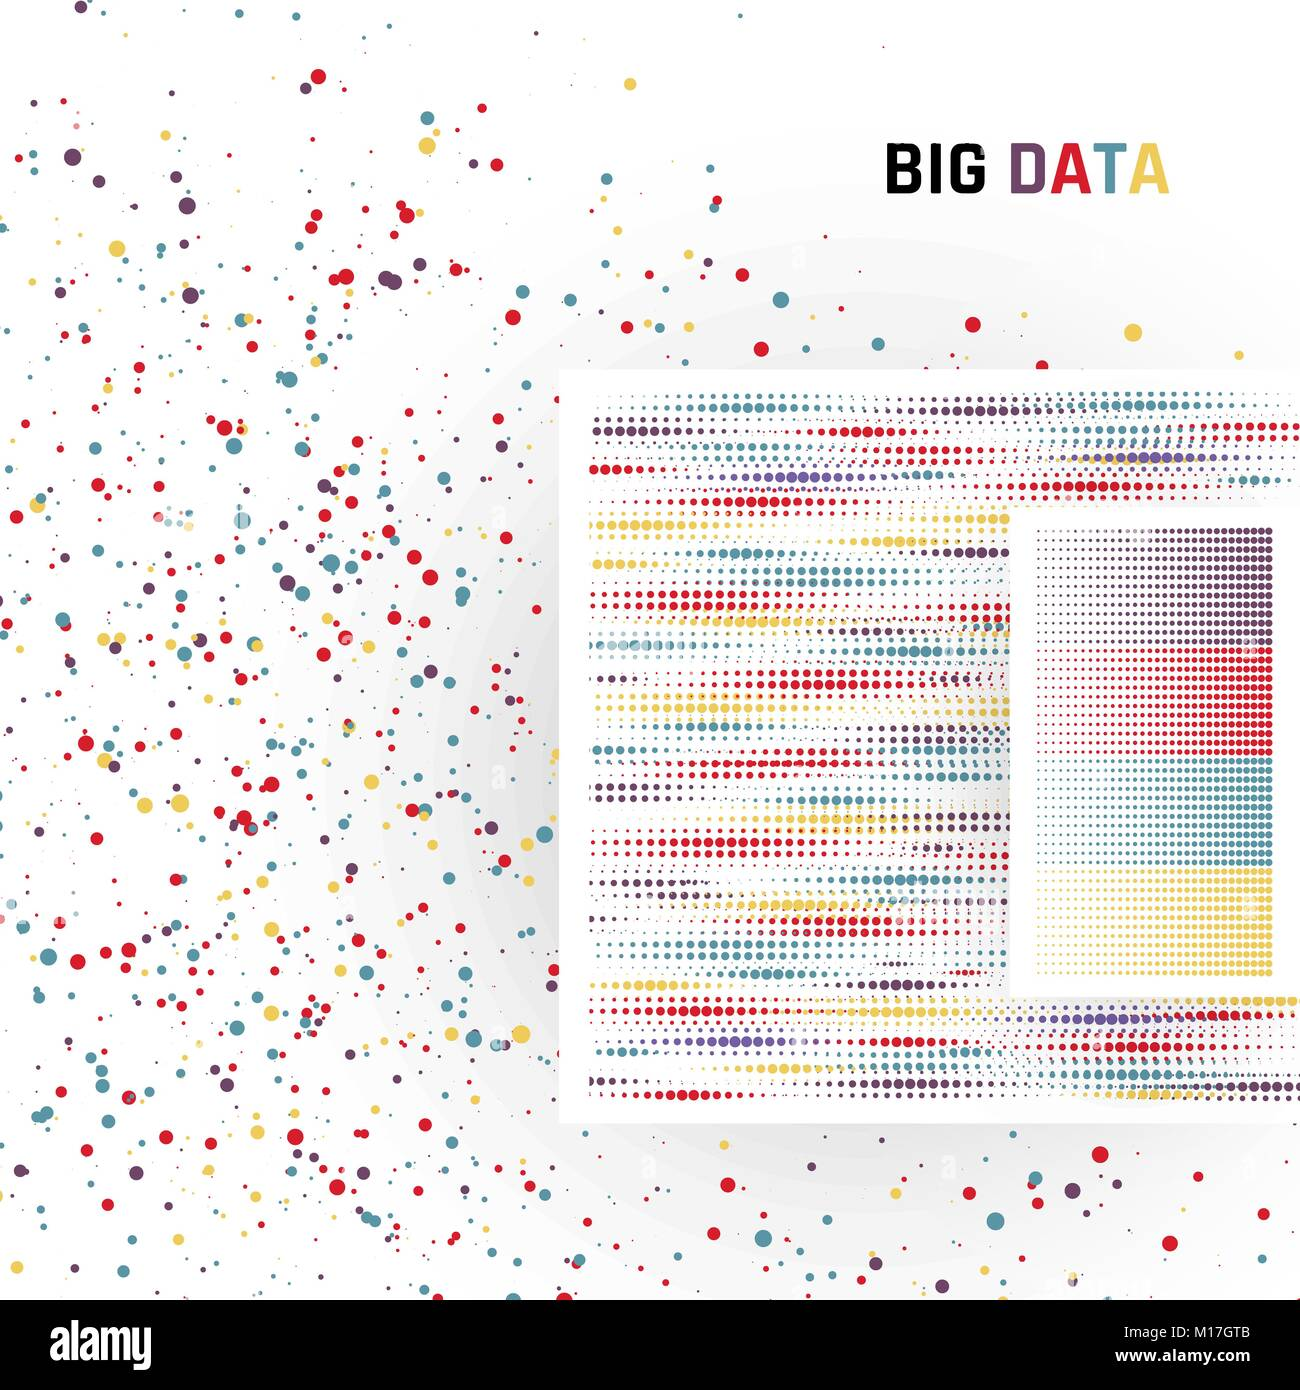 Big data. Processing of structured and unstructured data of huge volumes. Vector illustration - Stock Vector